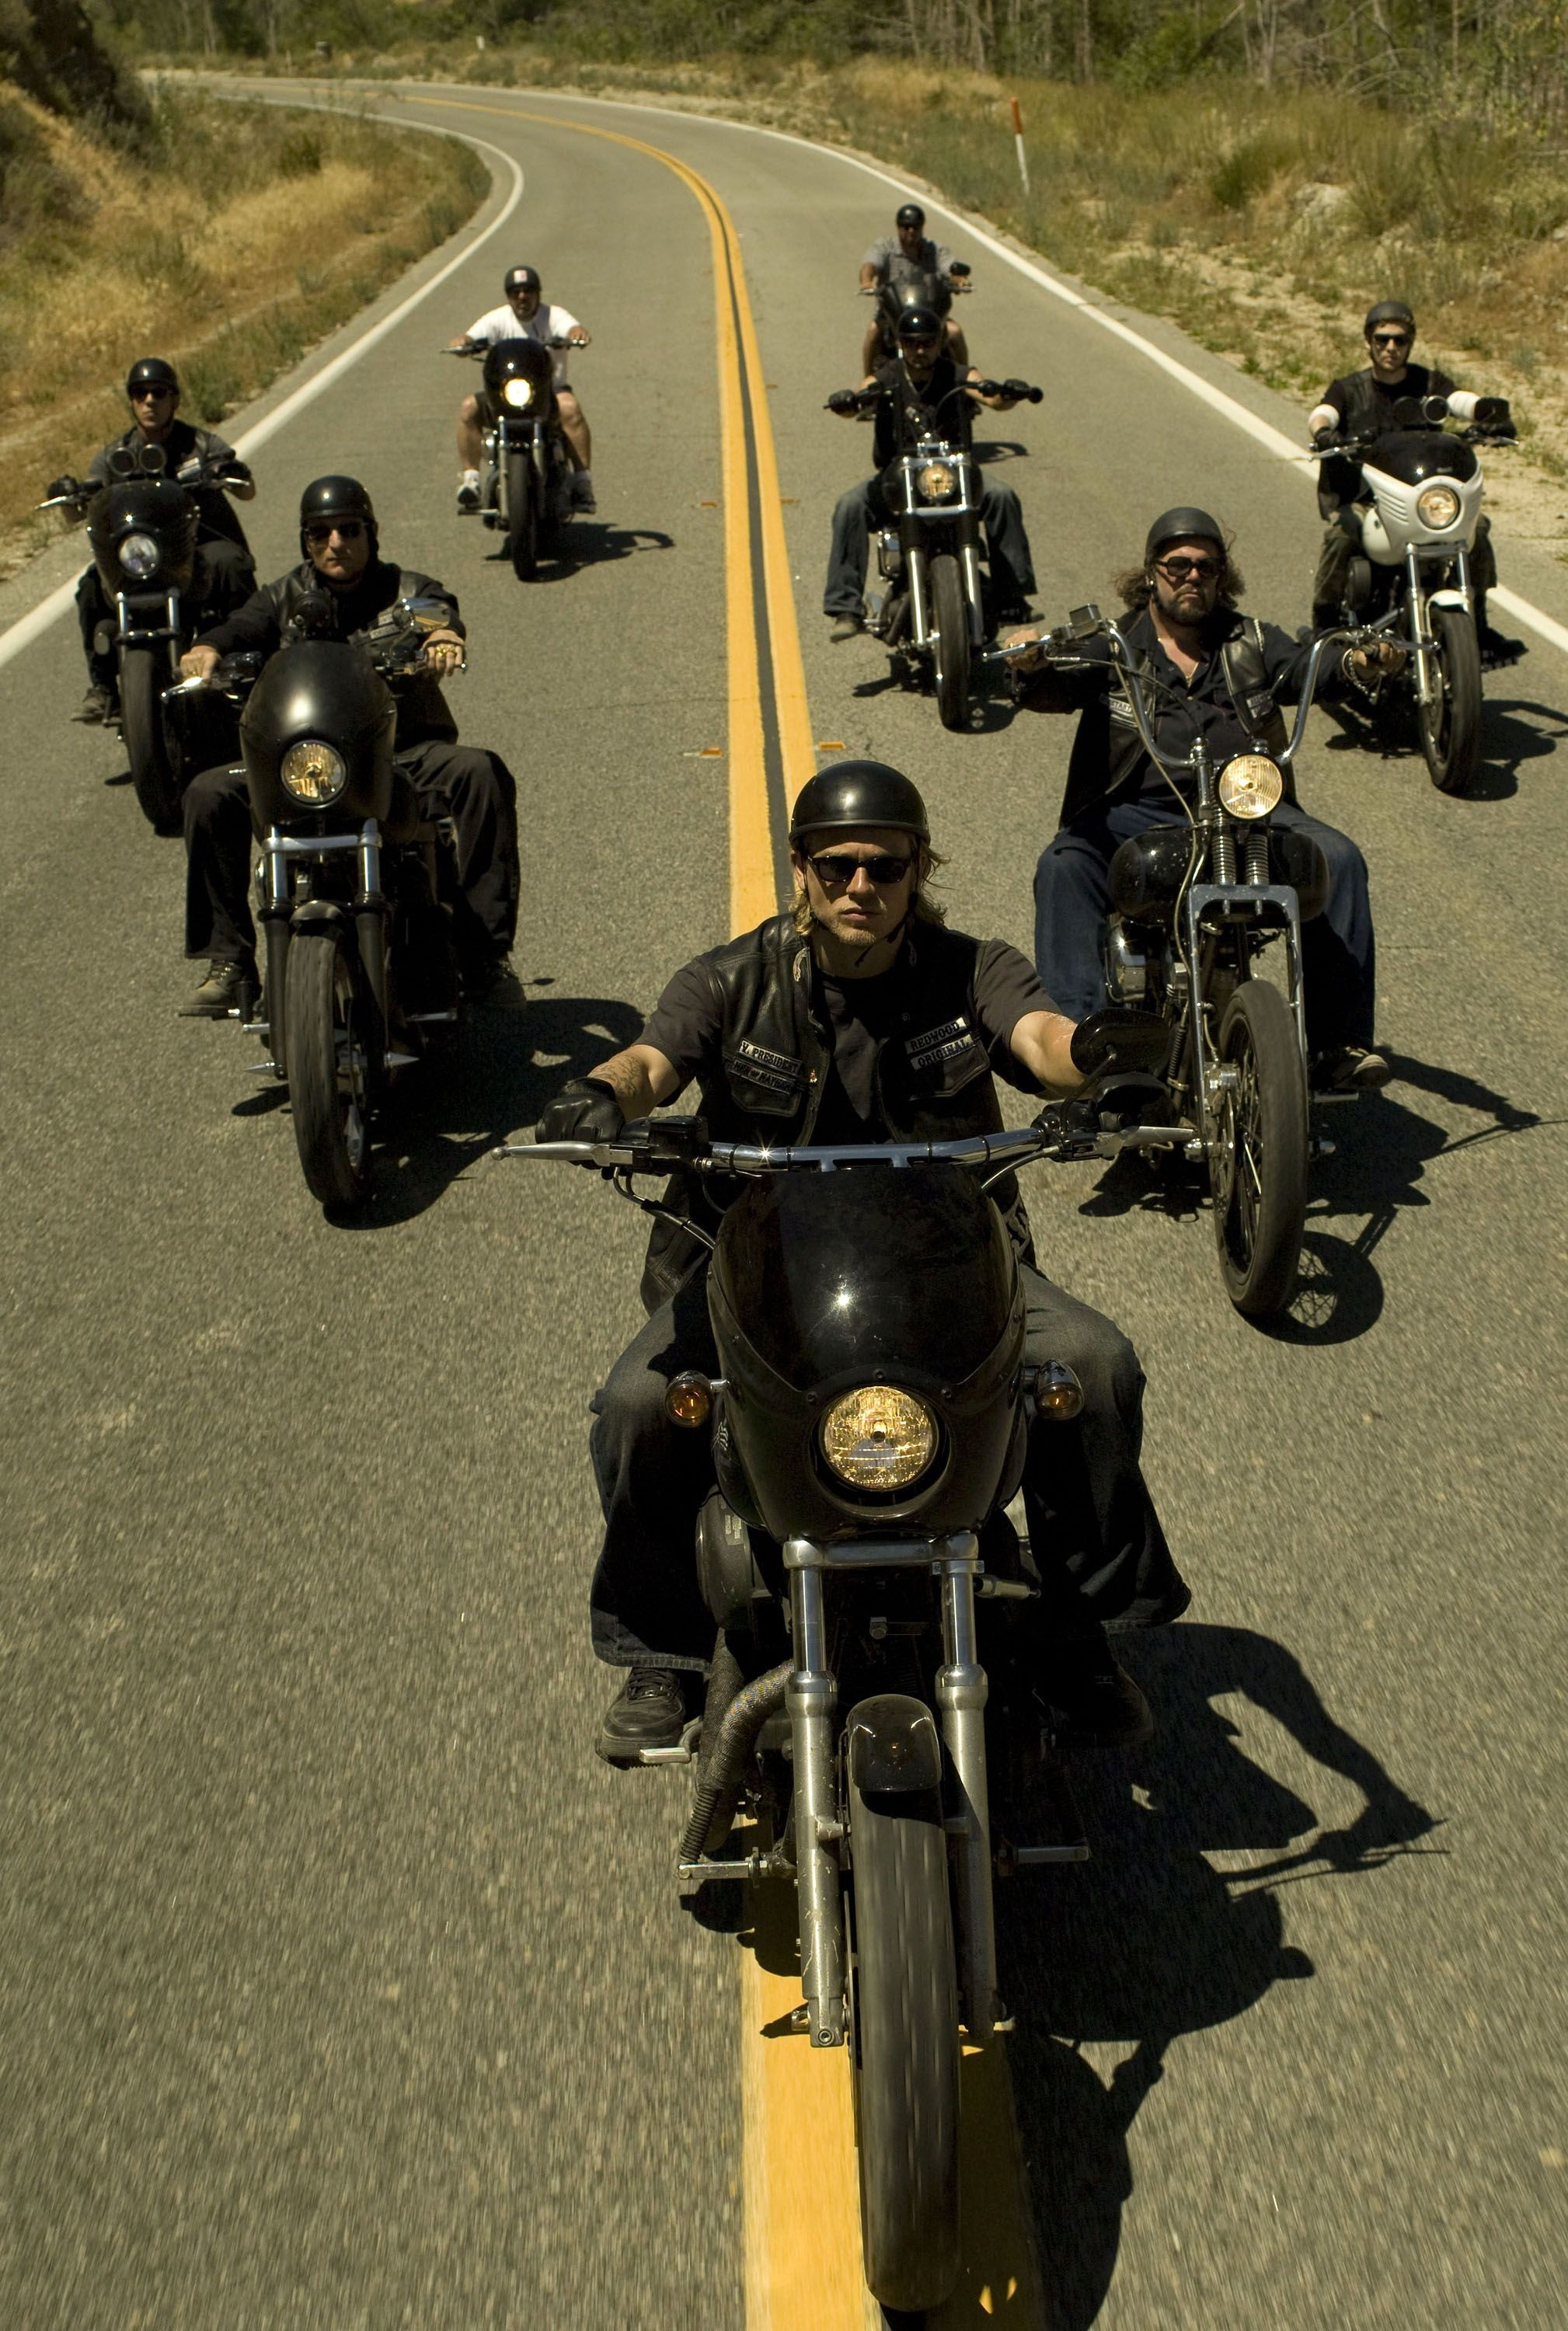 Res: 2018x3000, sons of anarchy wallpaper 1280x720 - Pesquisa Google